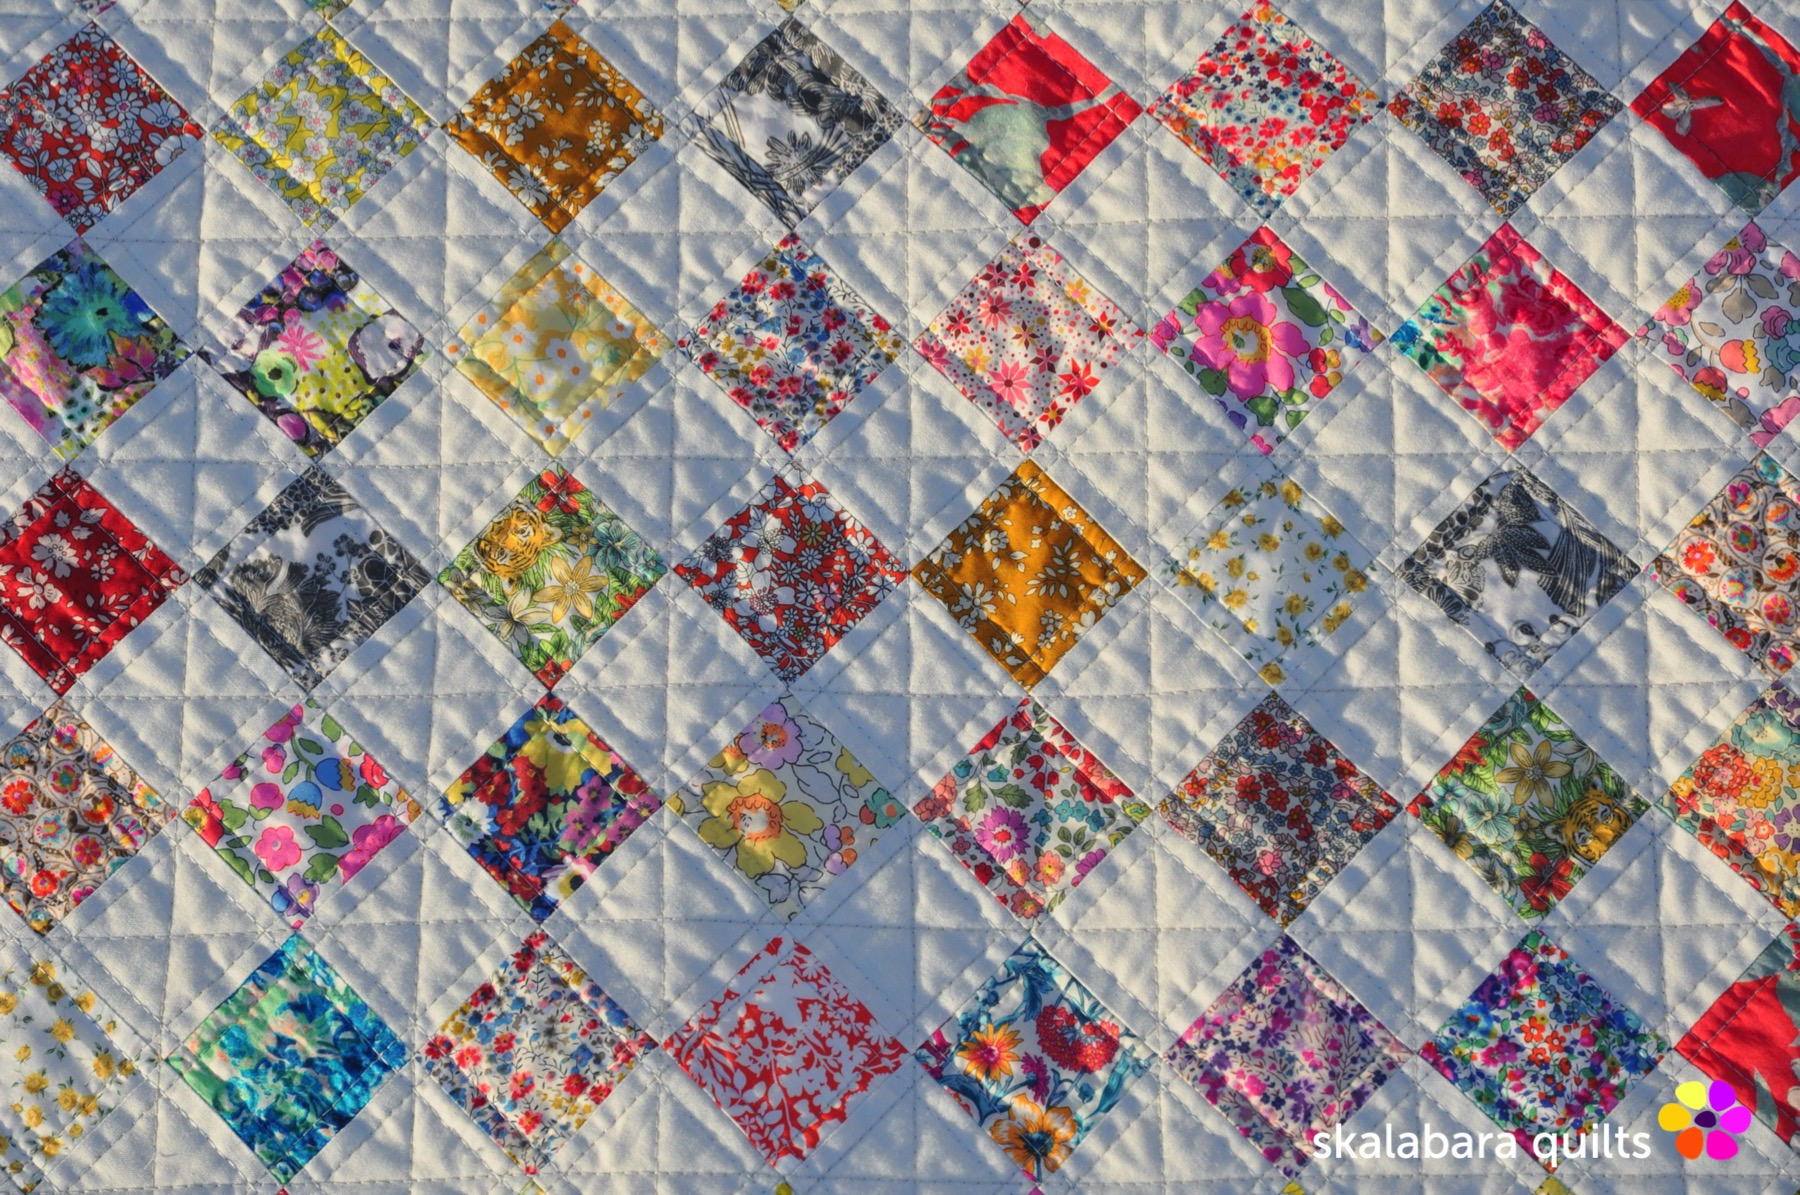 liberty checkered quilt detail 4 - skalabara quilts